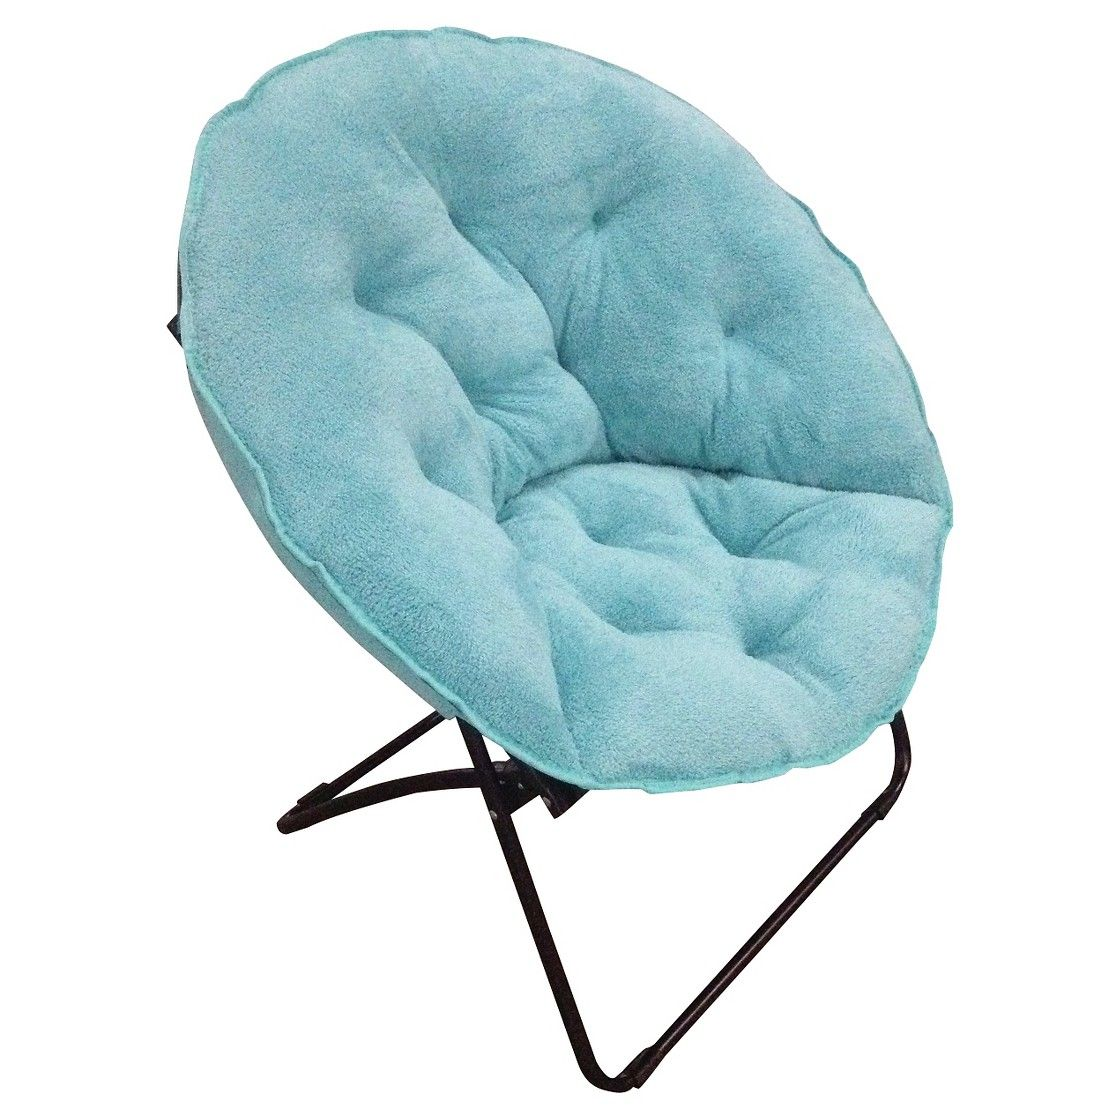 Dish Chair Room Essentials Fuzzy Dish Chair Aisle D16 Blue Or Grey